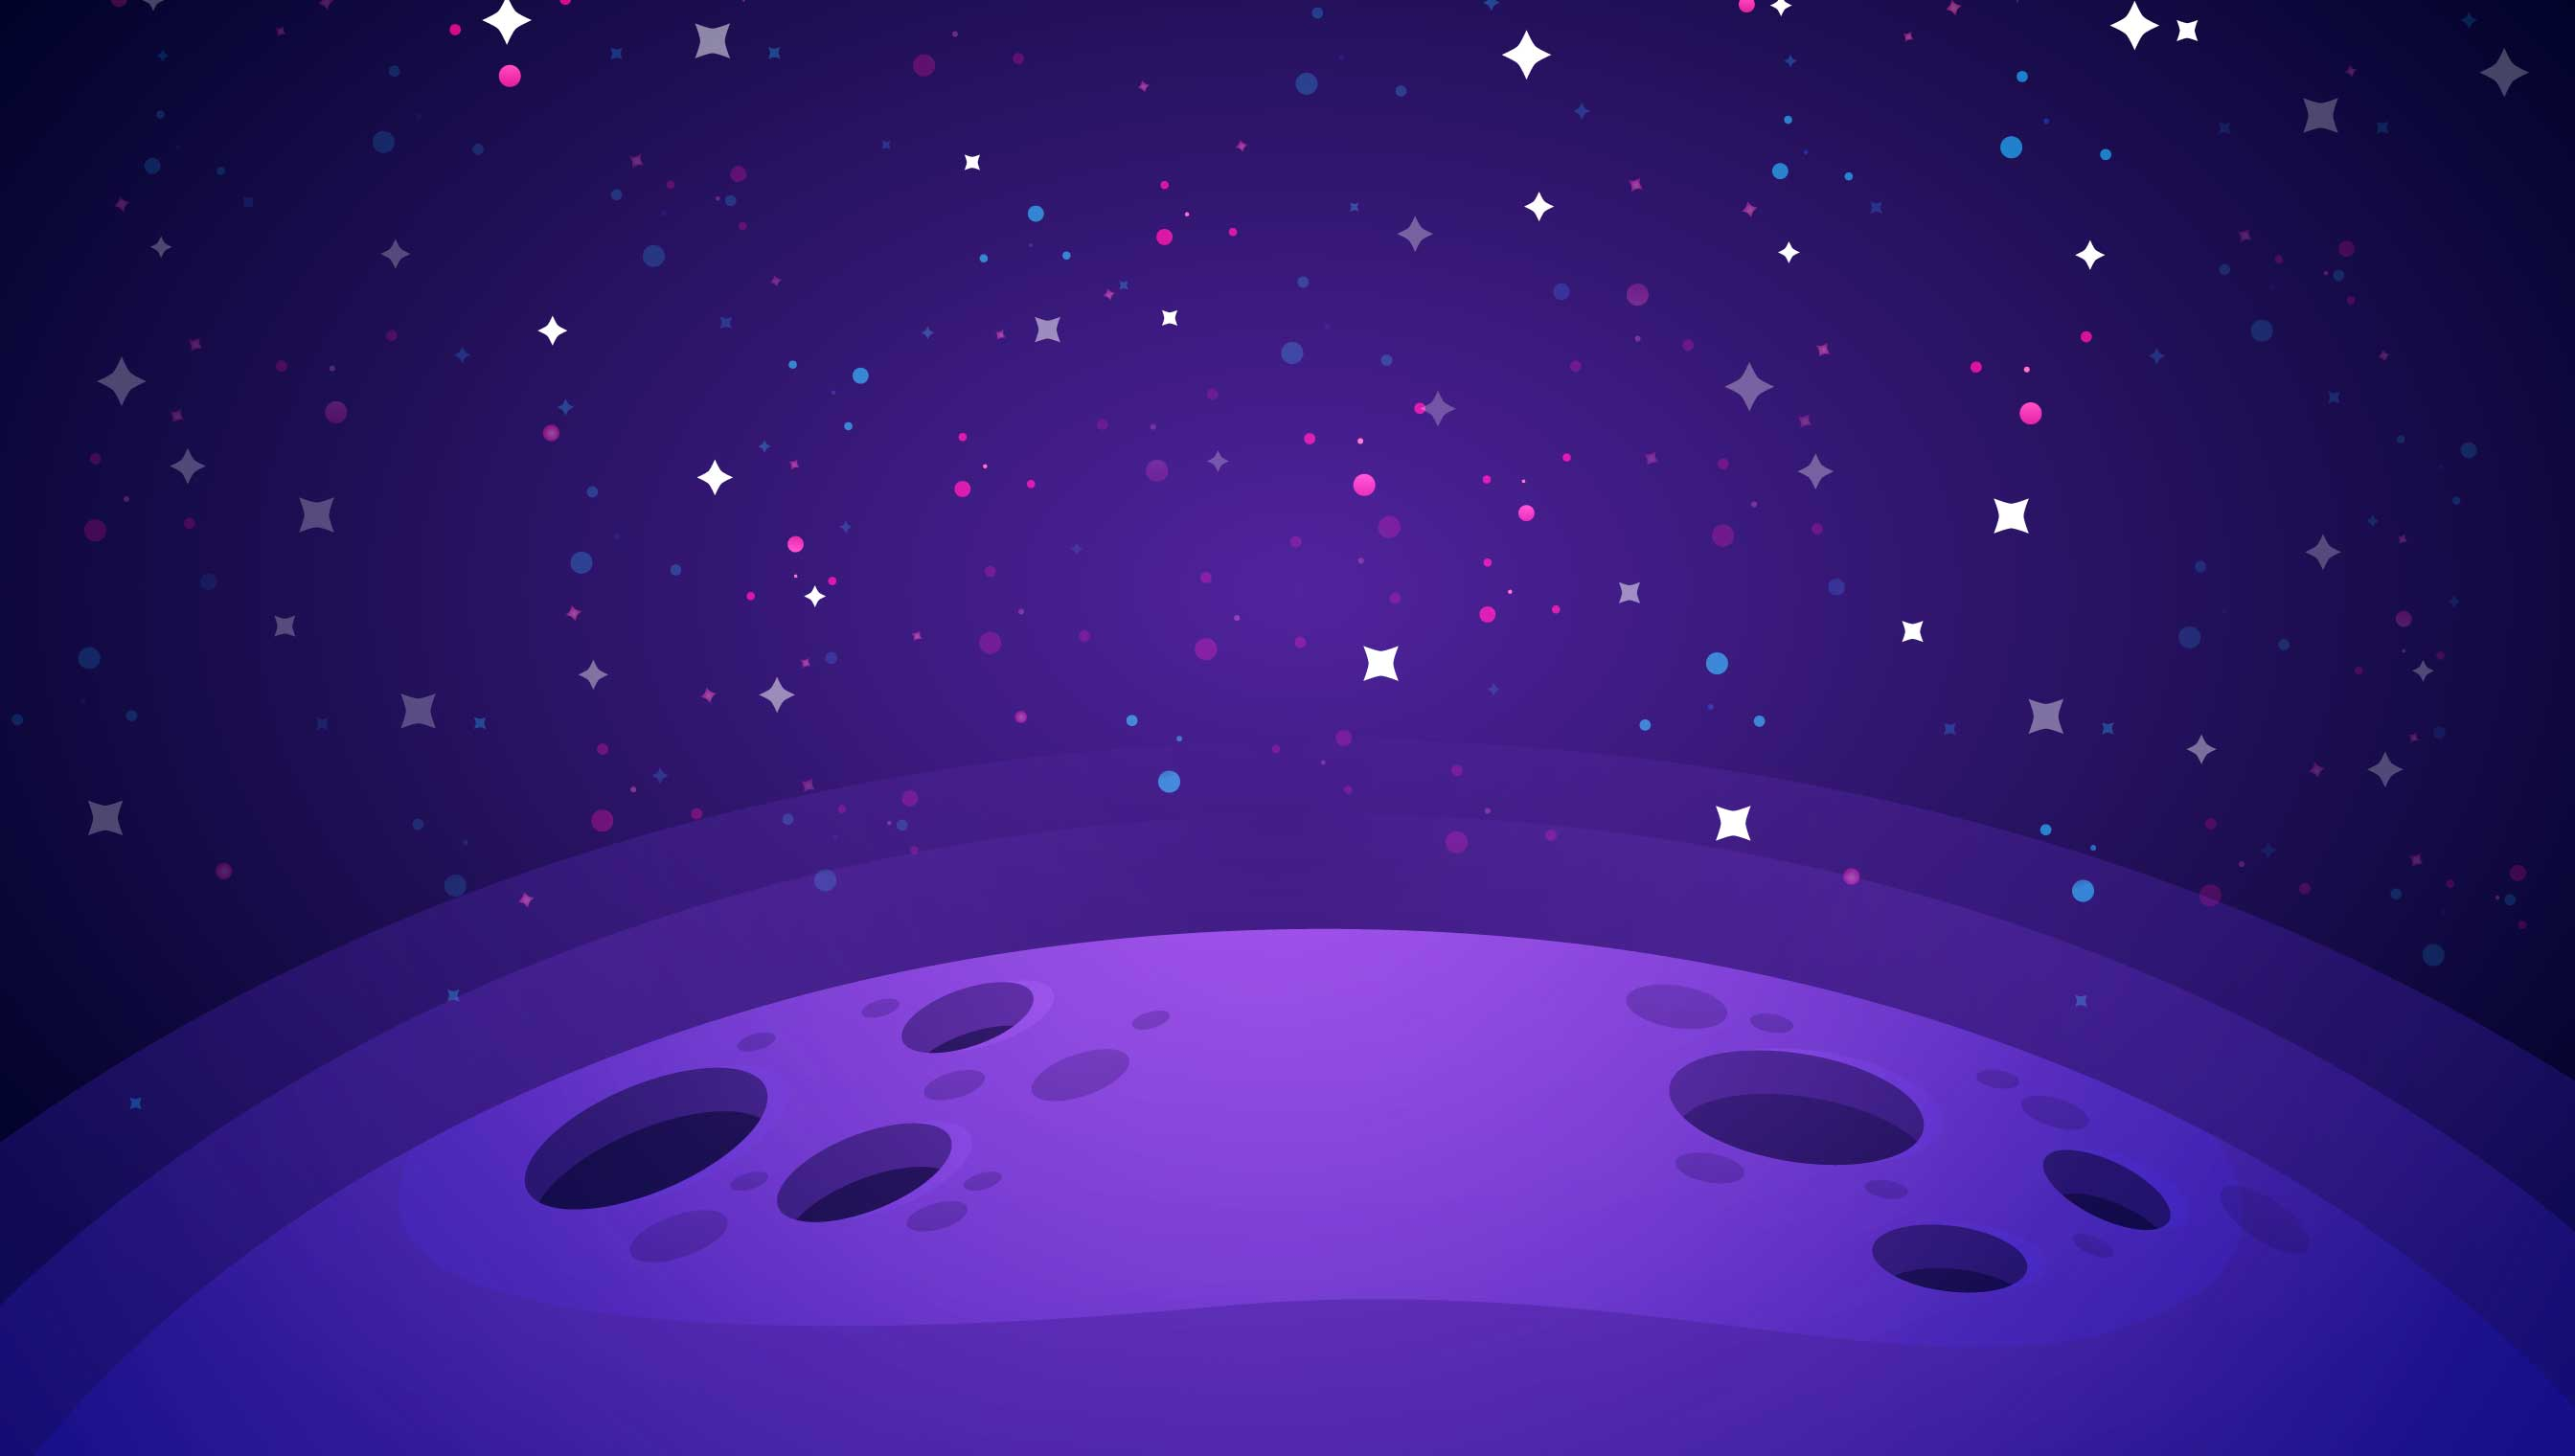 background scene - Space Background 12